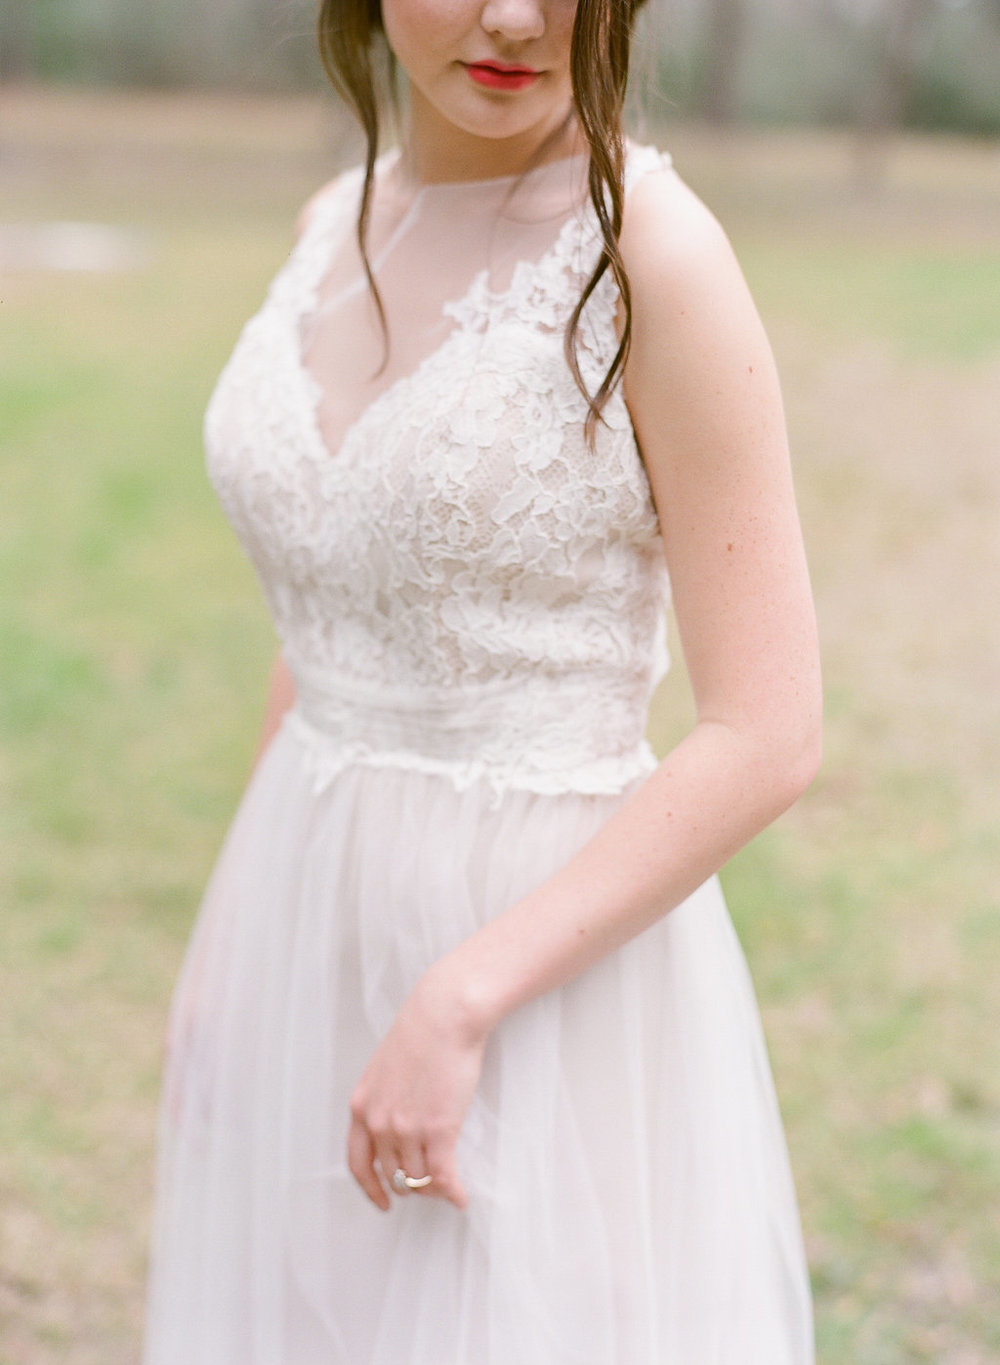 the-happy-bloom-photography-ti-adora-7553-ivory-and-beau-bridal-boutique-savannah-wedding-dresses-old-sheldon-ruins-savannah-wedding-planner-savannah-event-designer-savannah-weddings-savannah-film-photographer-savannah-photography-workshop-6.jpg